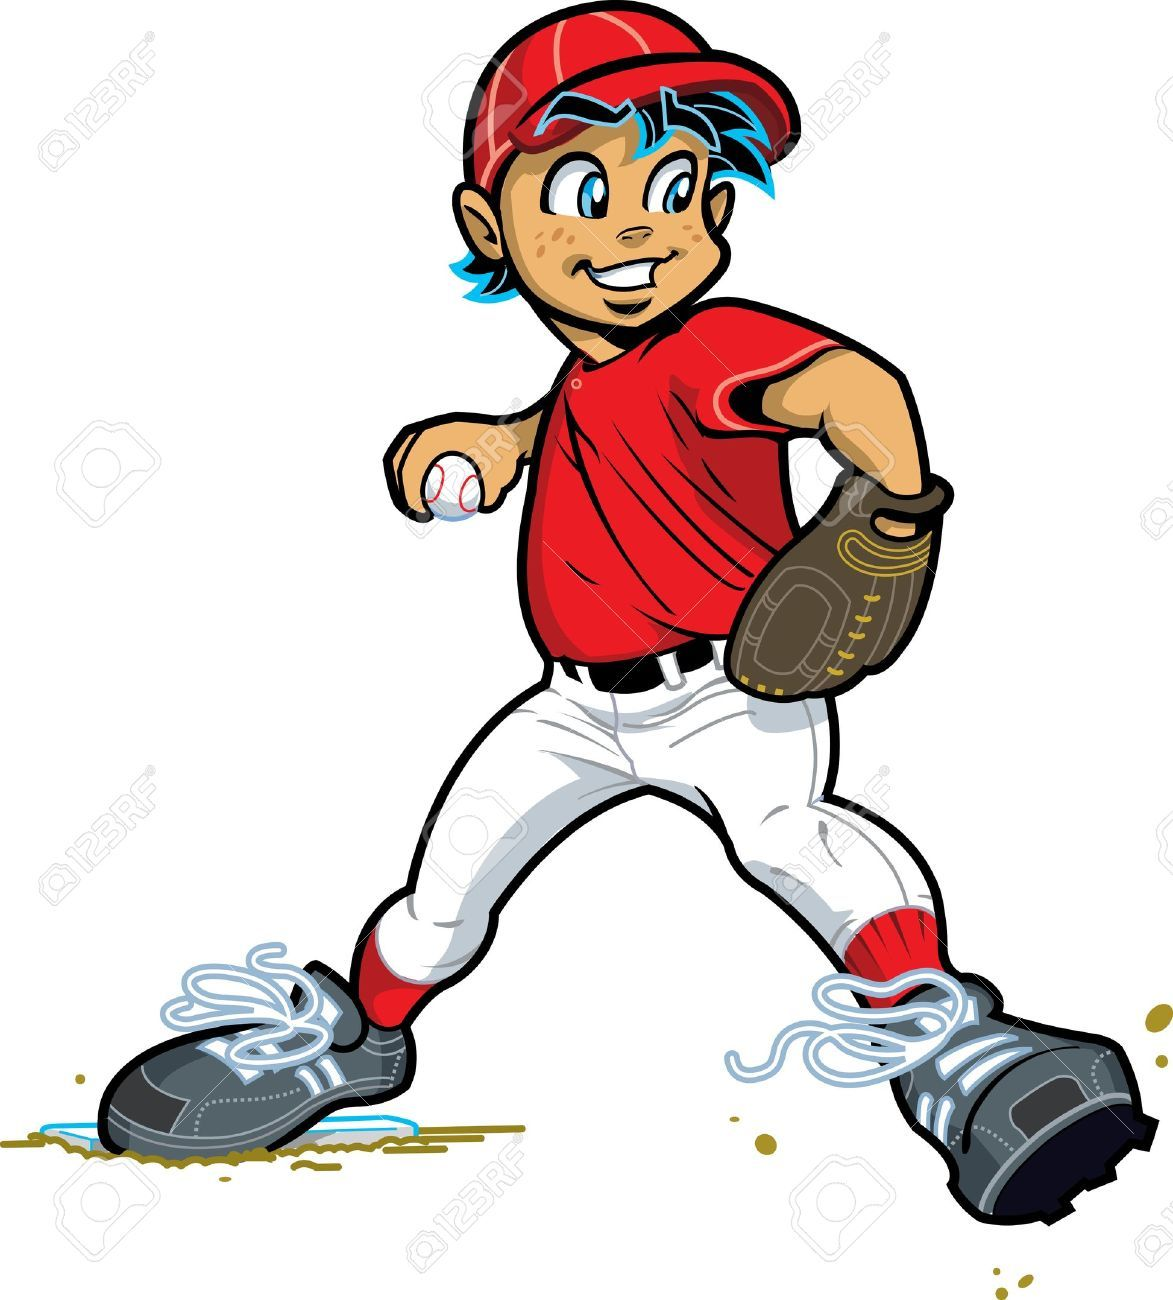 20686893 Young Boy Pitcher For Baseball And Softball Stock Vector Baseball Cartoon Player Jpg 1173 1300 Baseball Pitcher Baseball Softball Baseball